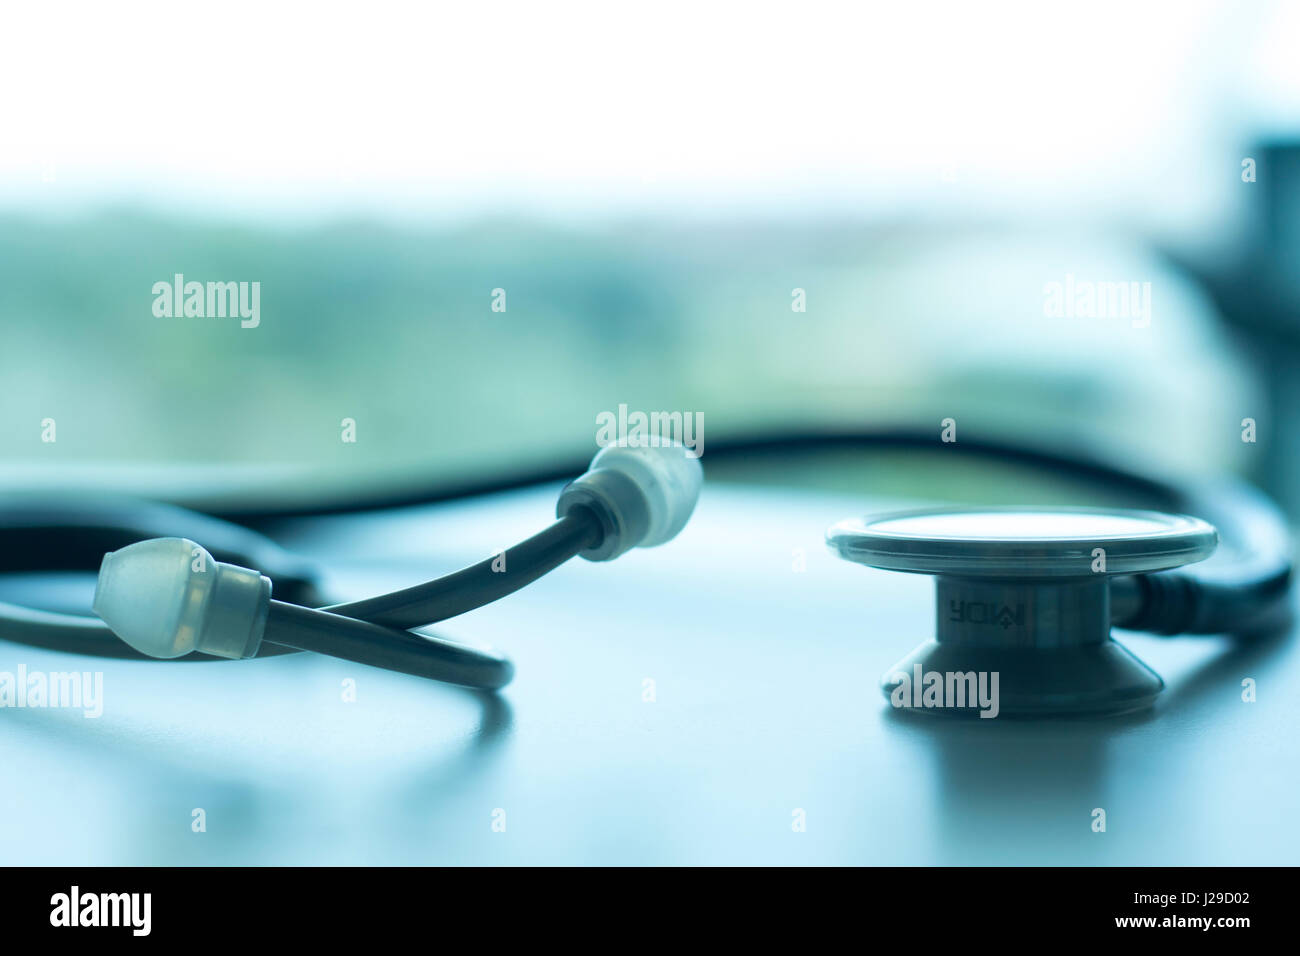 Doctors medical stethoscope heart rate monitoring equipment to listen to heartbeats of patient, - Stock Image